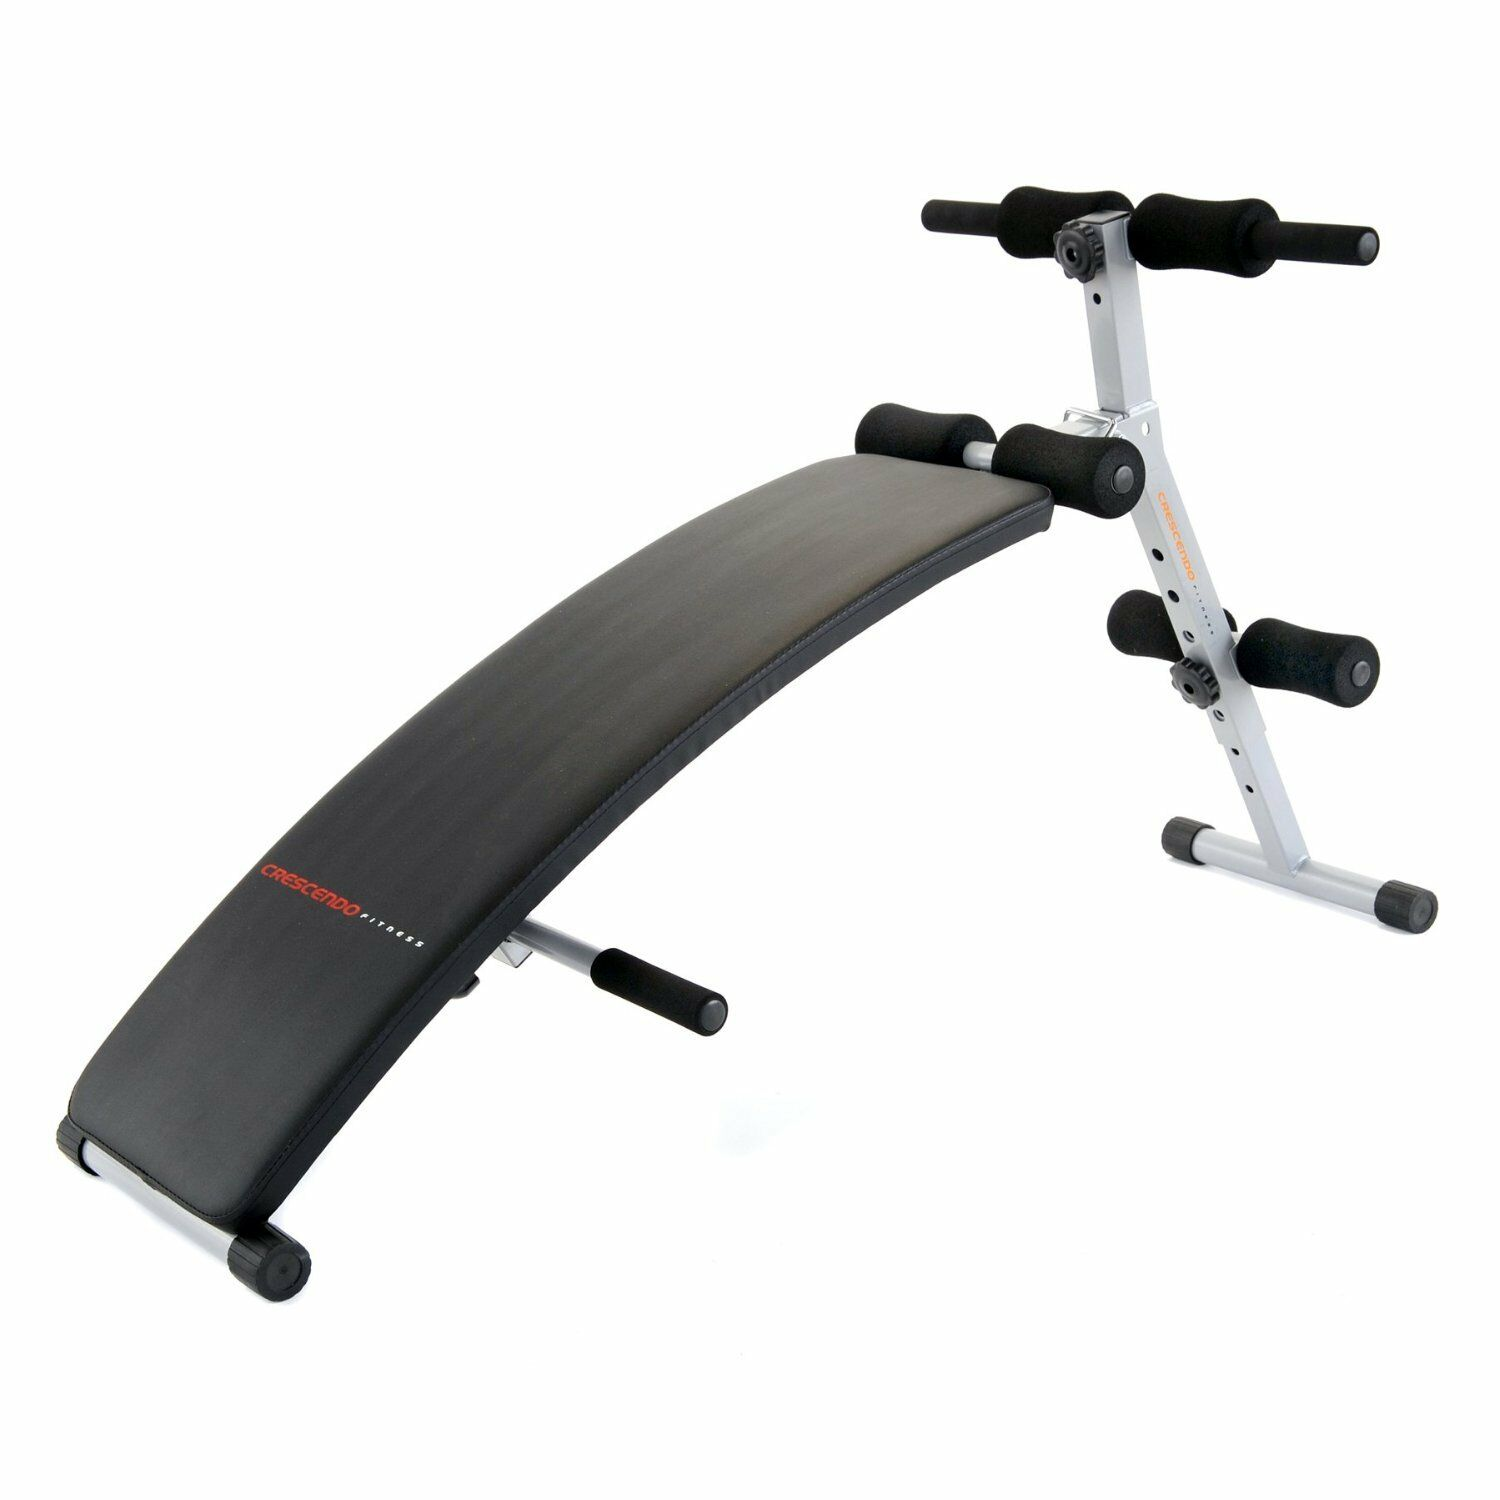 Decline Bench Foldable Portable Ab Exercise Fitness Sit Up Crunches Situp Curved Eur 66 45